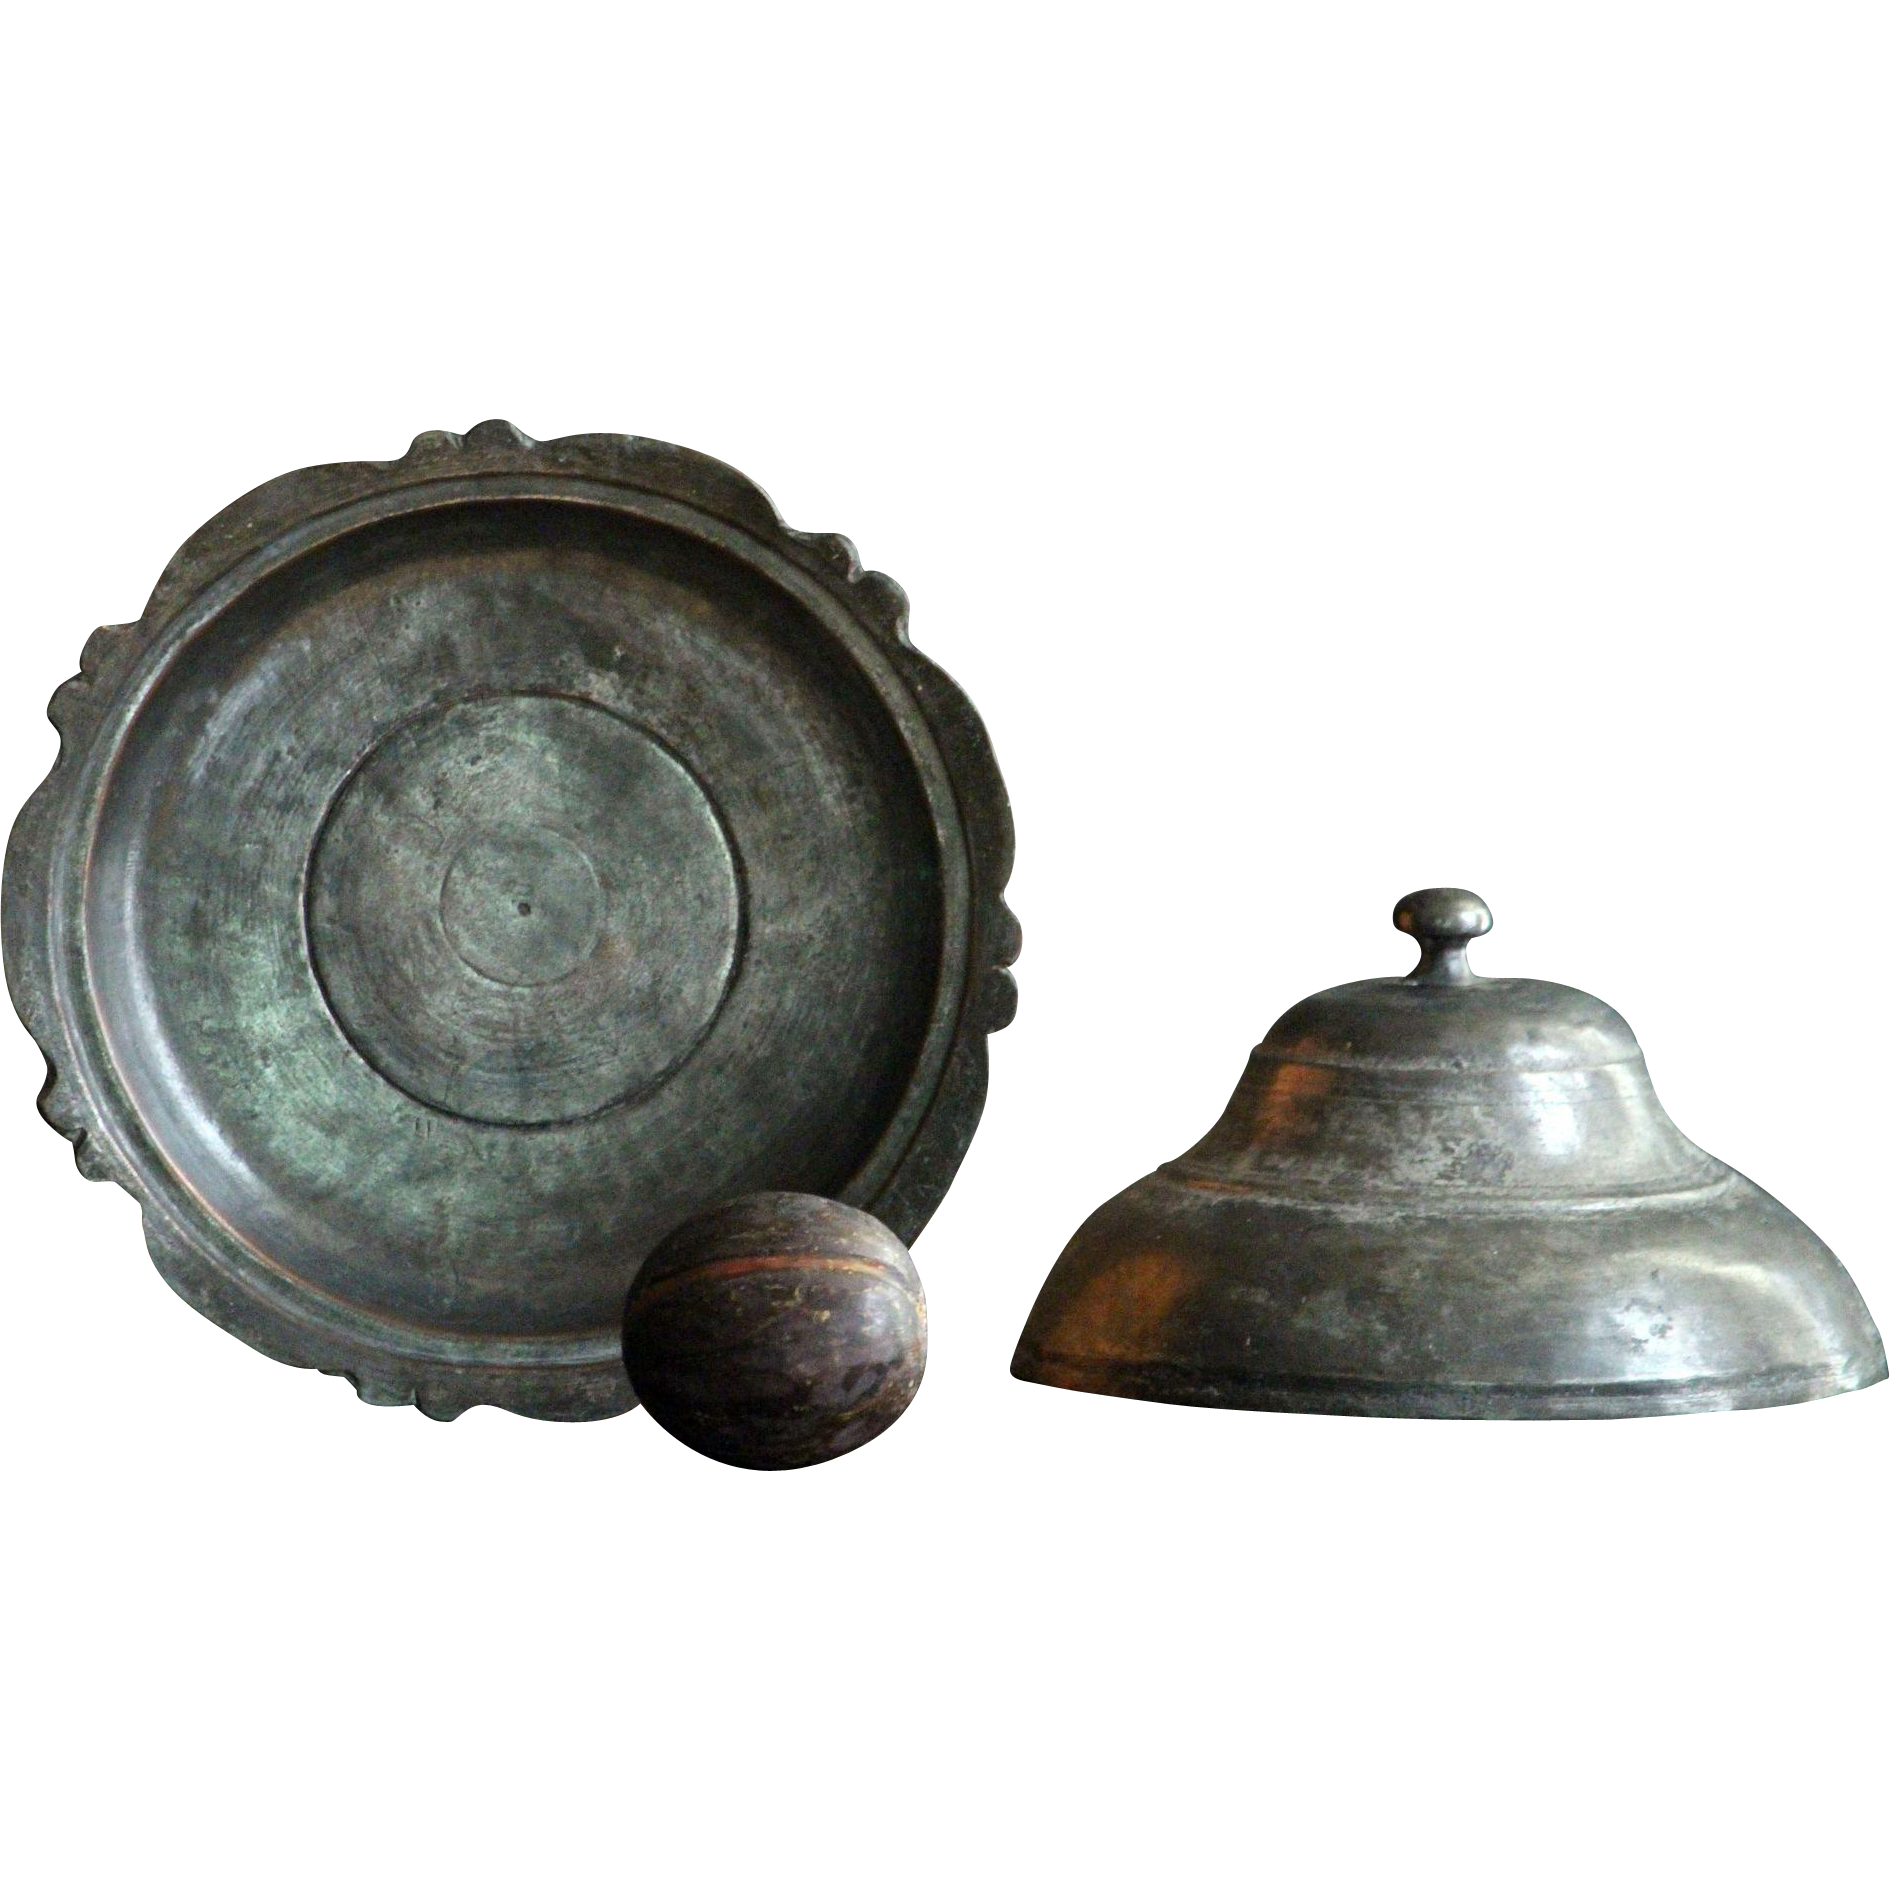 19th Century Turkish Ottoman Empire COPPER Tinned Dish - Antique Lidded Serving Bowl / Dish